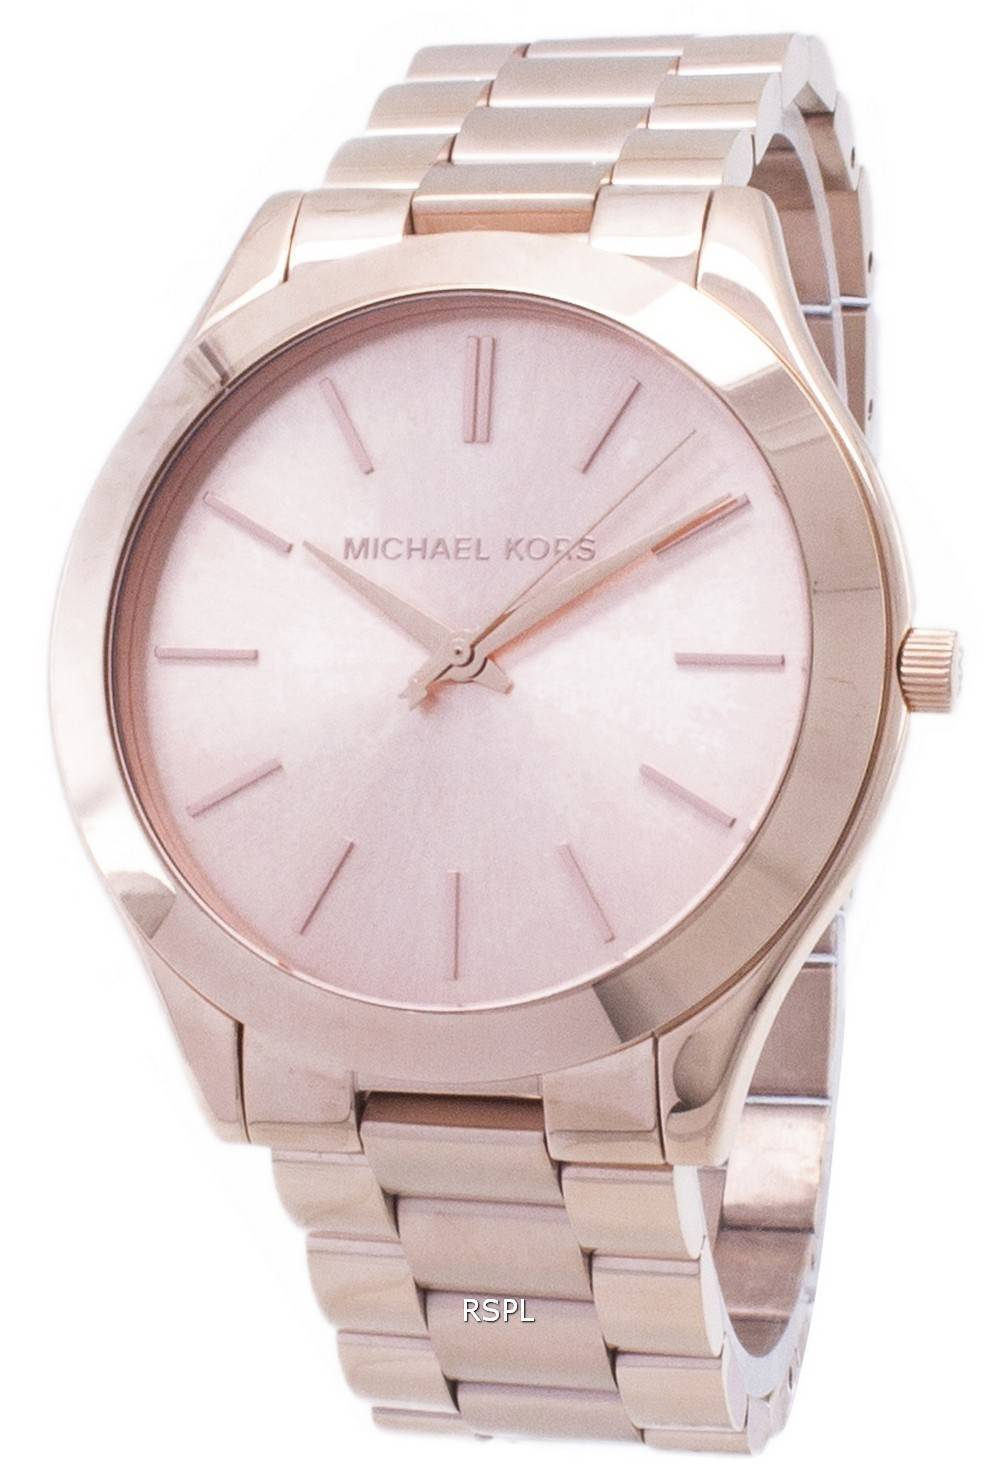 204c08e468fa Michael Kors Runway Rose Gold Tone MK3197 Womens Watch - CityWatches ...